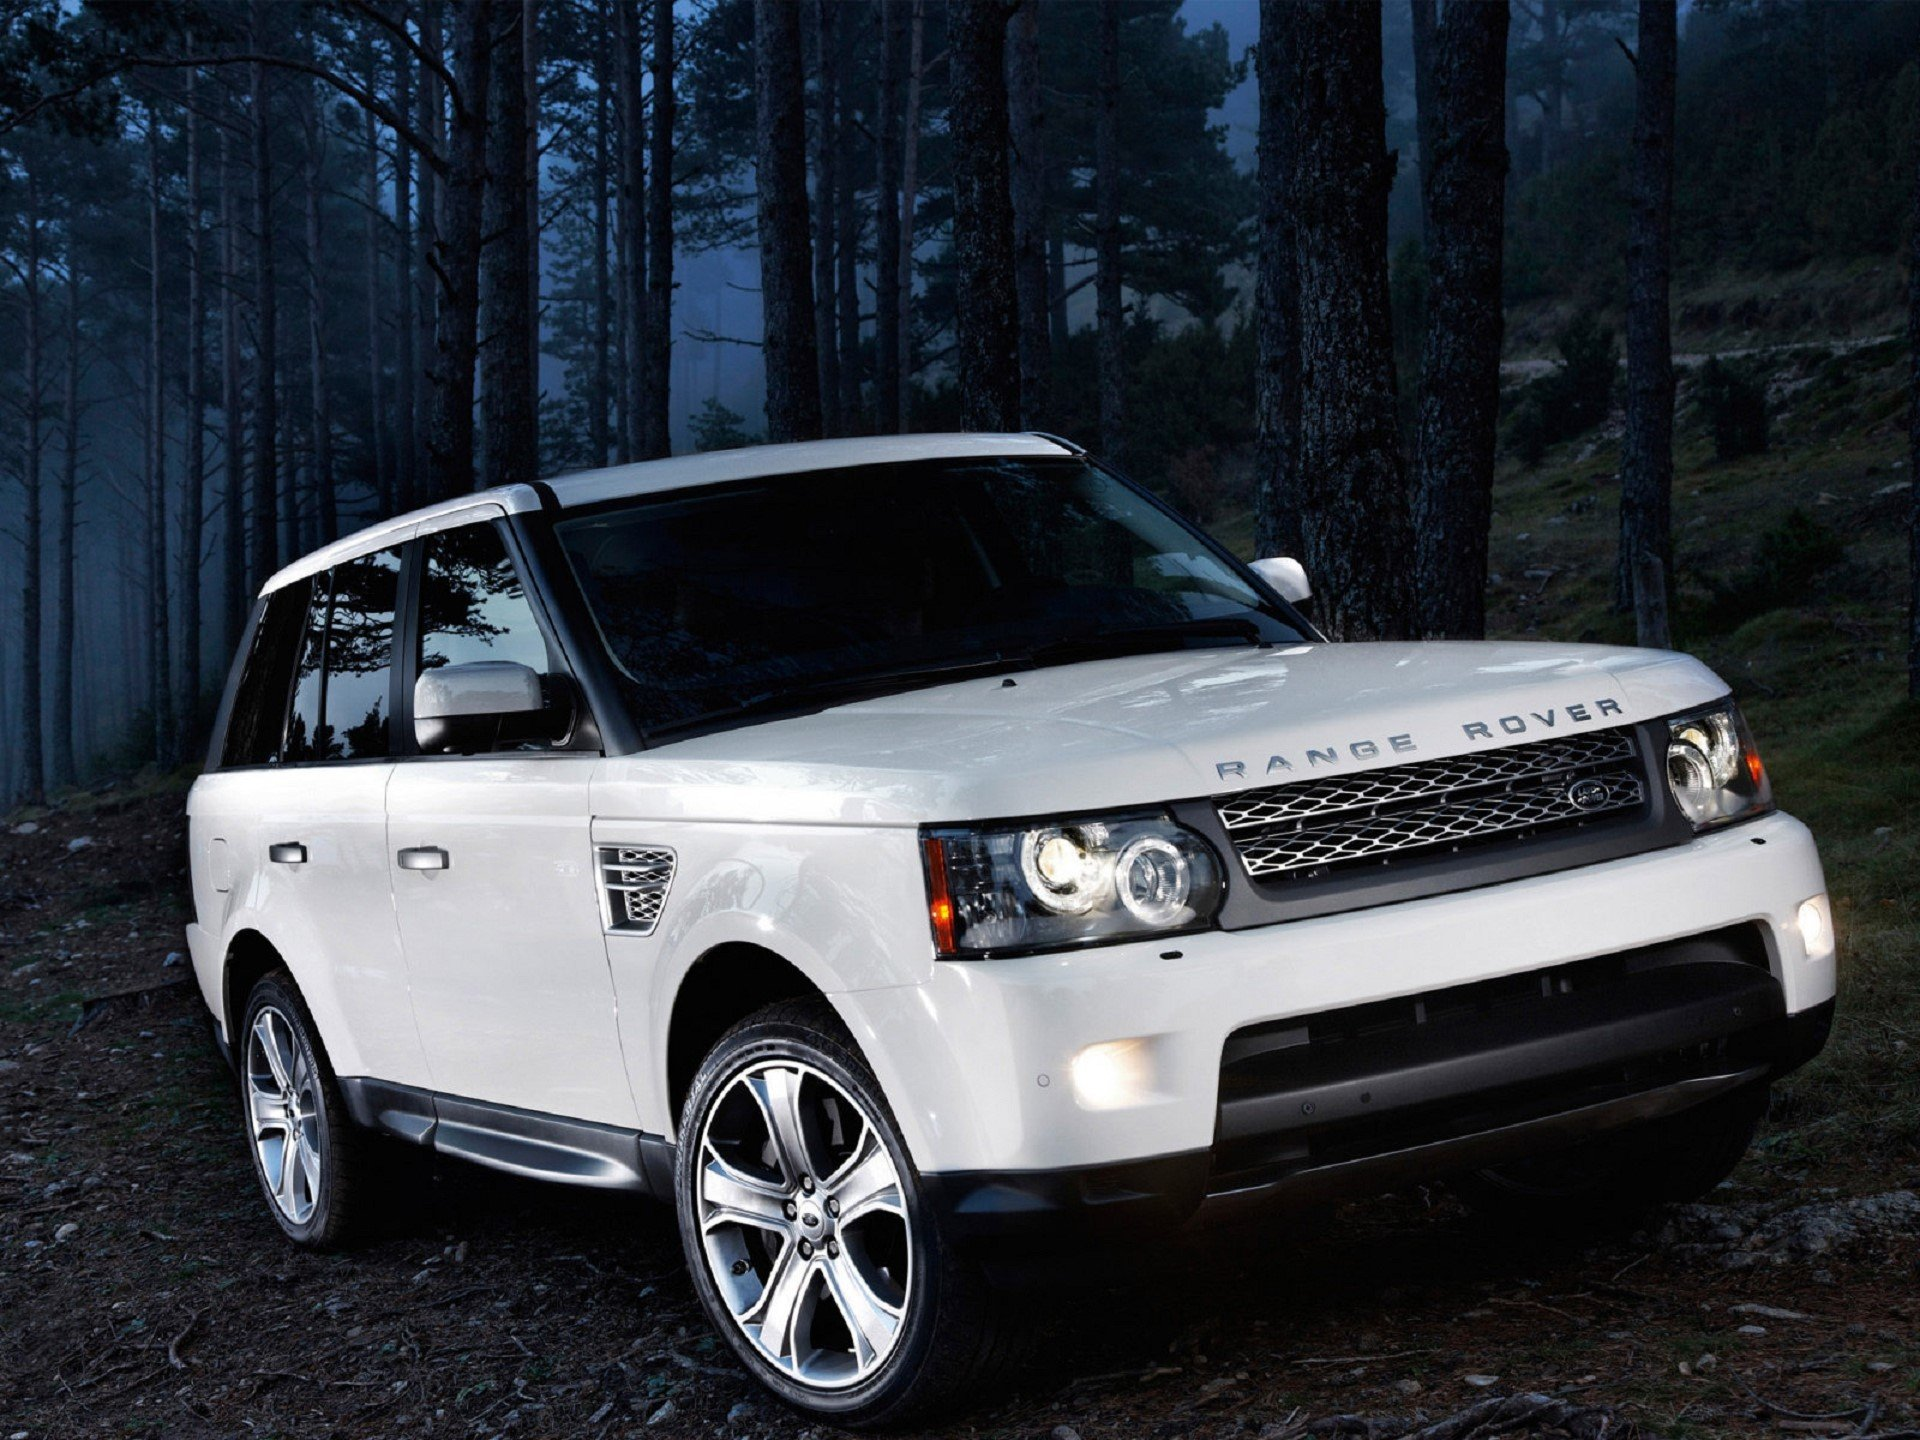 Range Rover Desktop Wallpapers